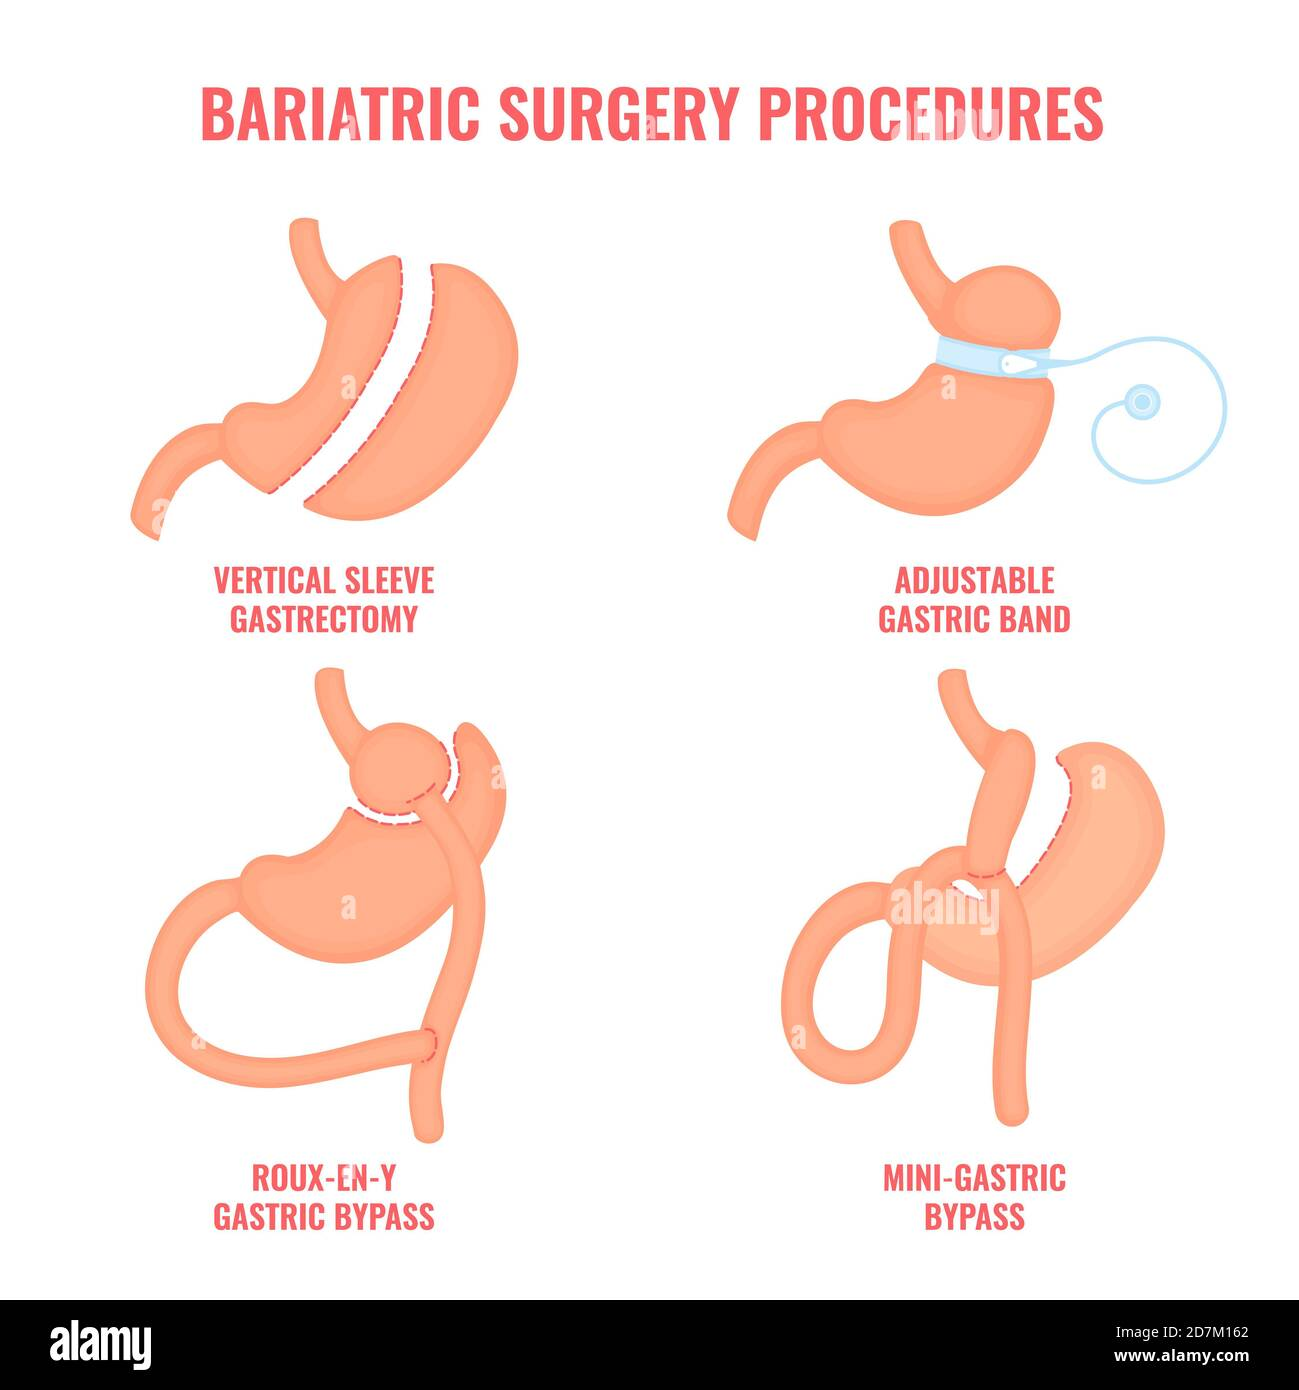 Bariatric surgery types, conceptual illustration. Types of weight loss surgery- gastric bypass, sleeve gastrectomy, and adjustable gastric band. Stock Photo